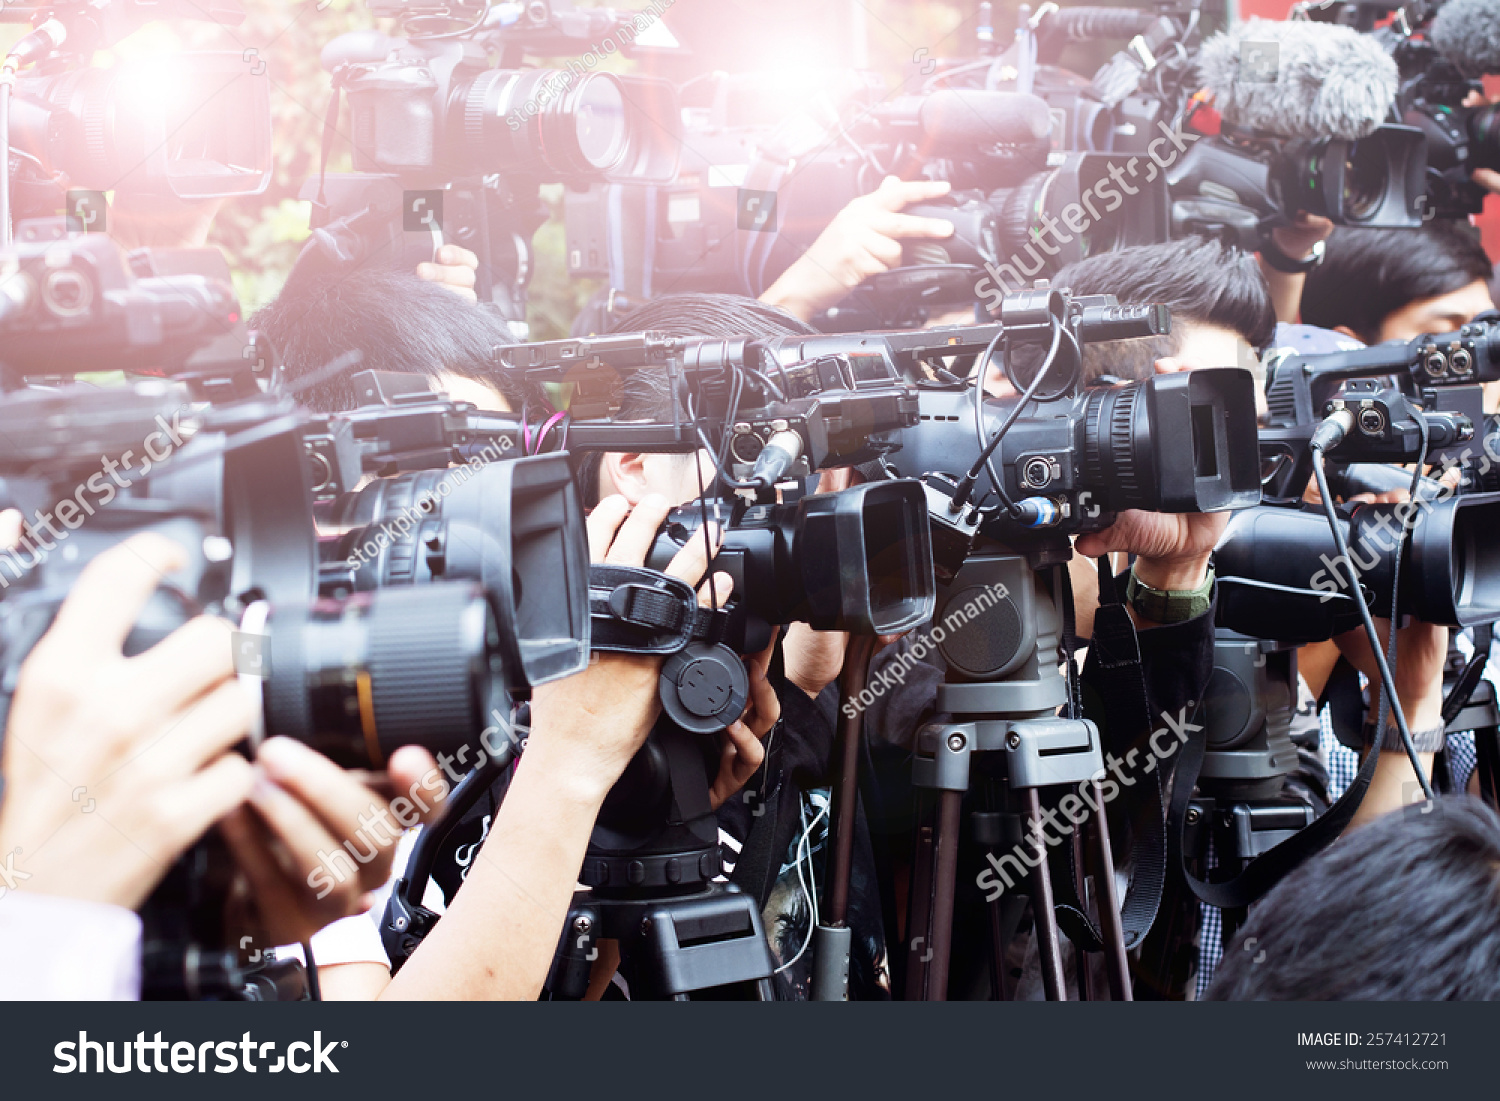 mass media coverage Mass media definition: you can use the mass media to refer to the various ways , especially television, radio  | meaning, pronunciation, translations and examples.